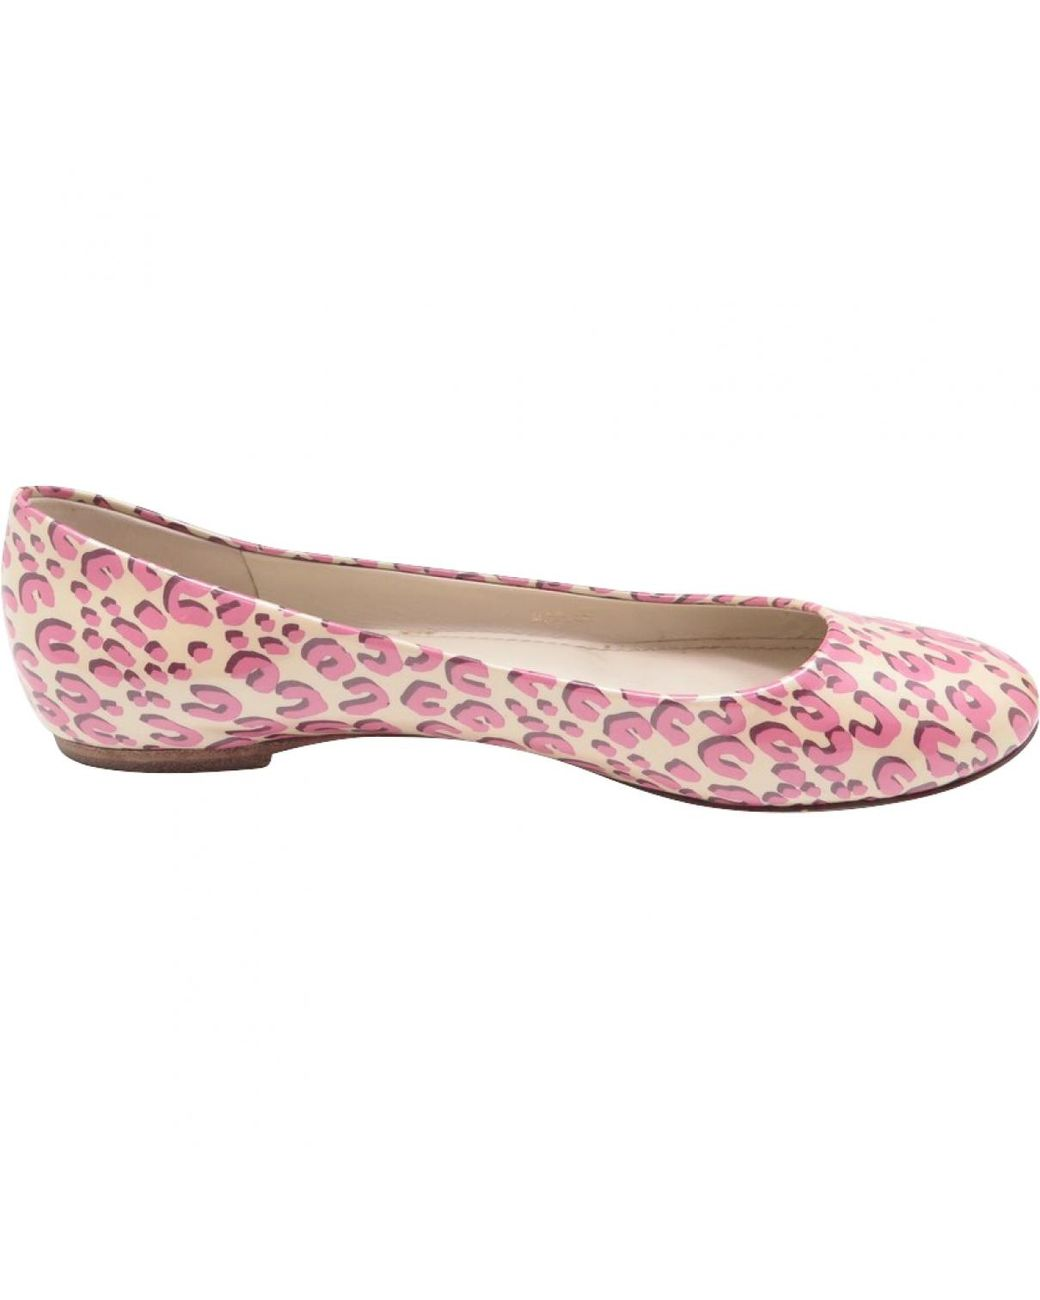 8e09f542f611 Louis Vuitton Patent Leather Ballet Flats in Pink - Lyst